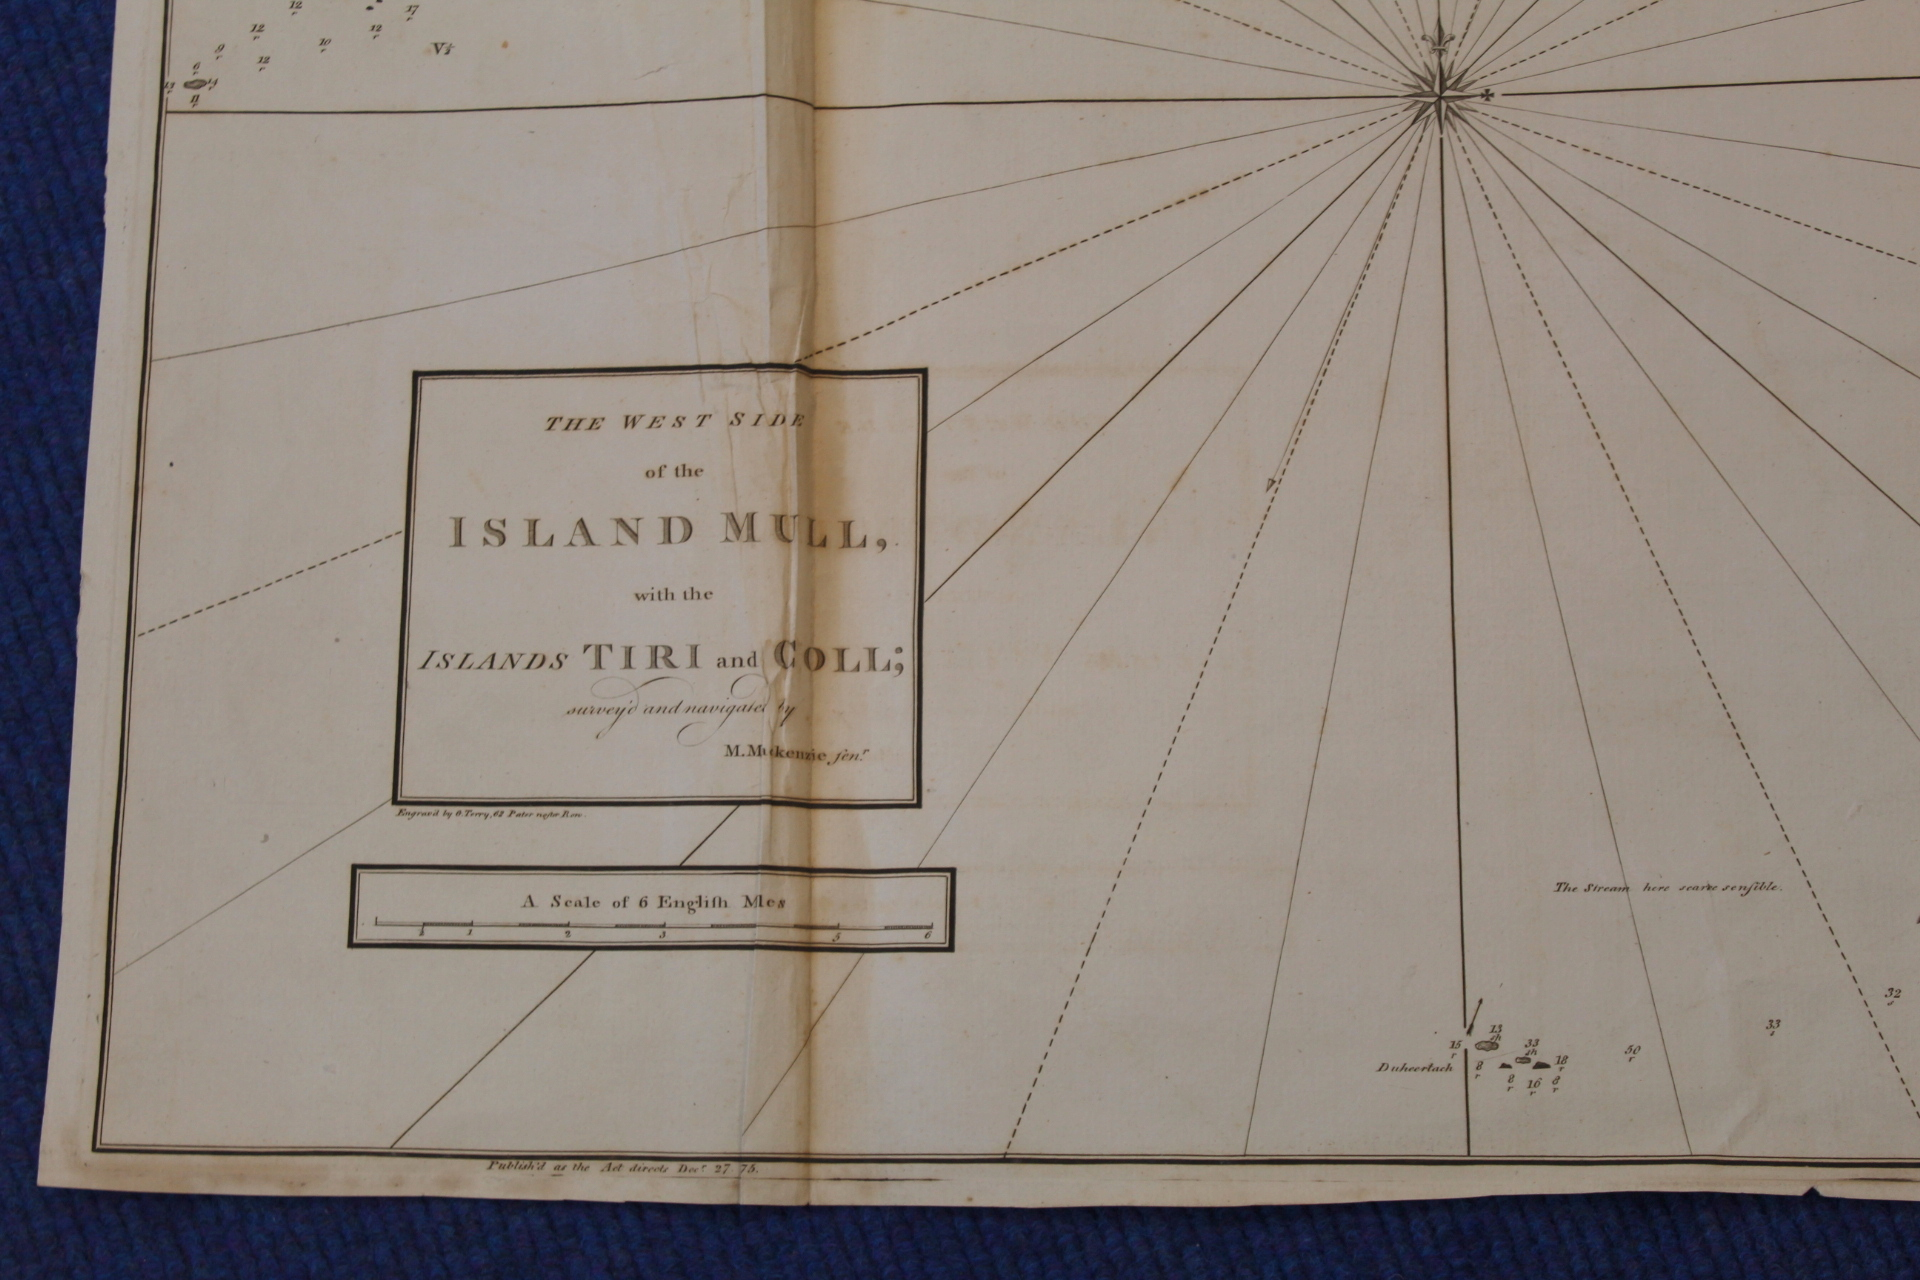 MACKENZIE MURDOCH (SNR.).A General Chart of the West Coast & Western Islands of Scotland from - Image 28 of 66